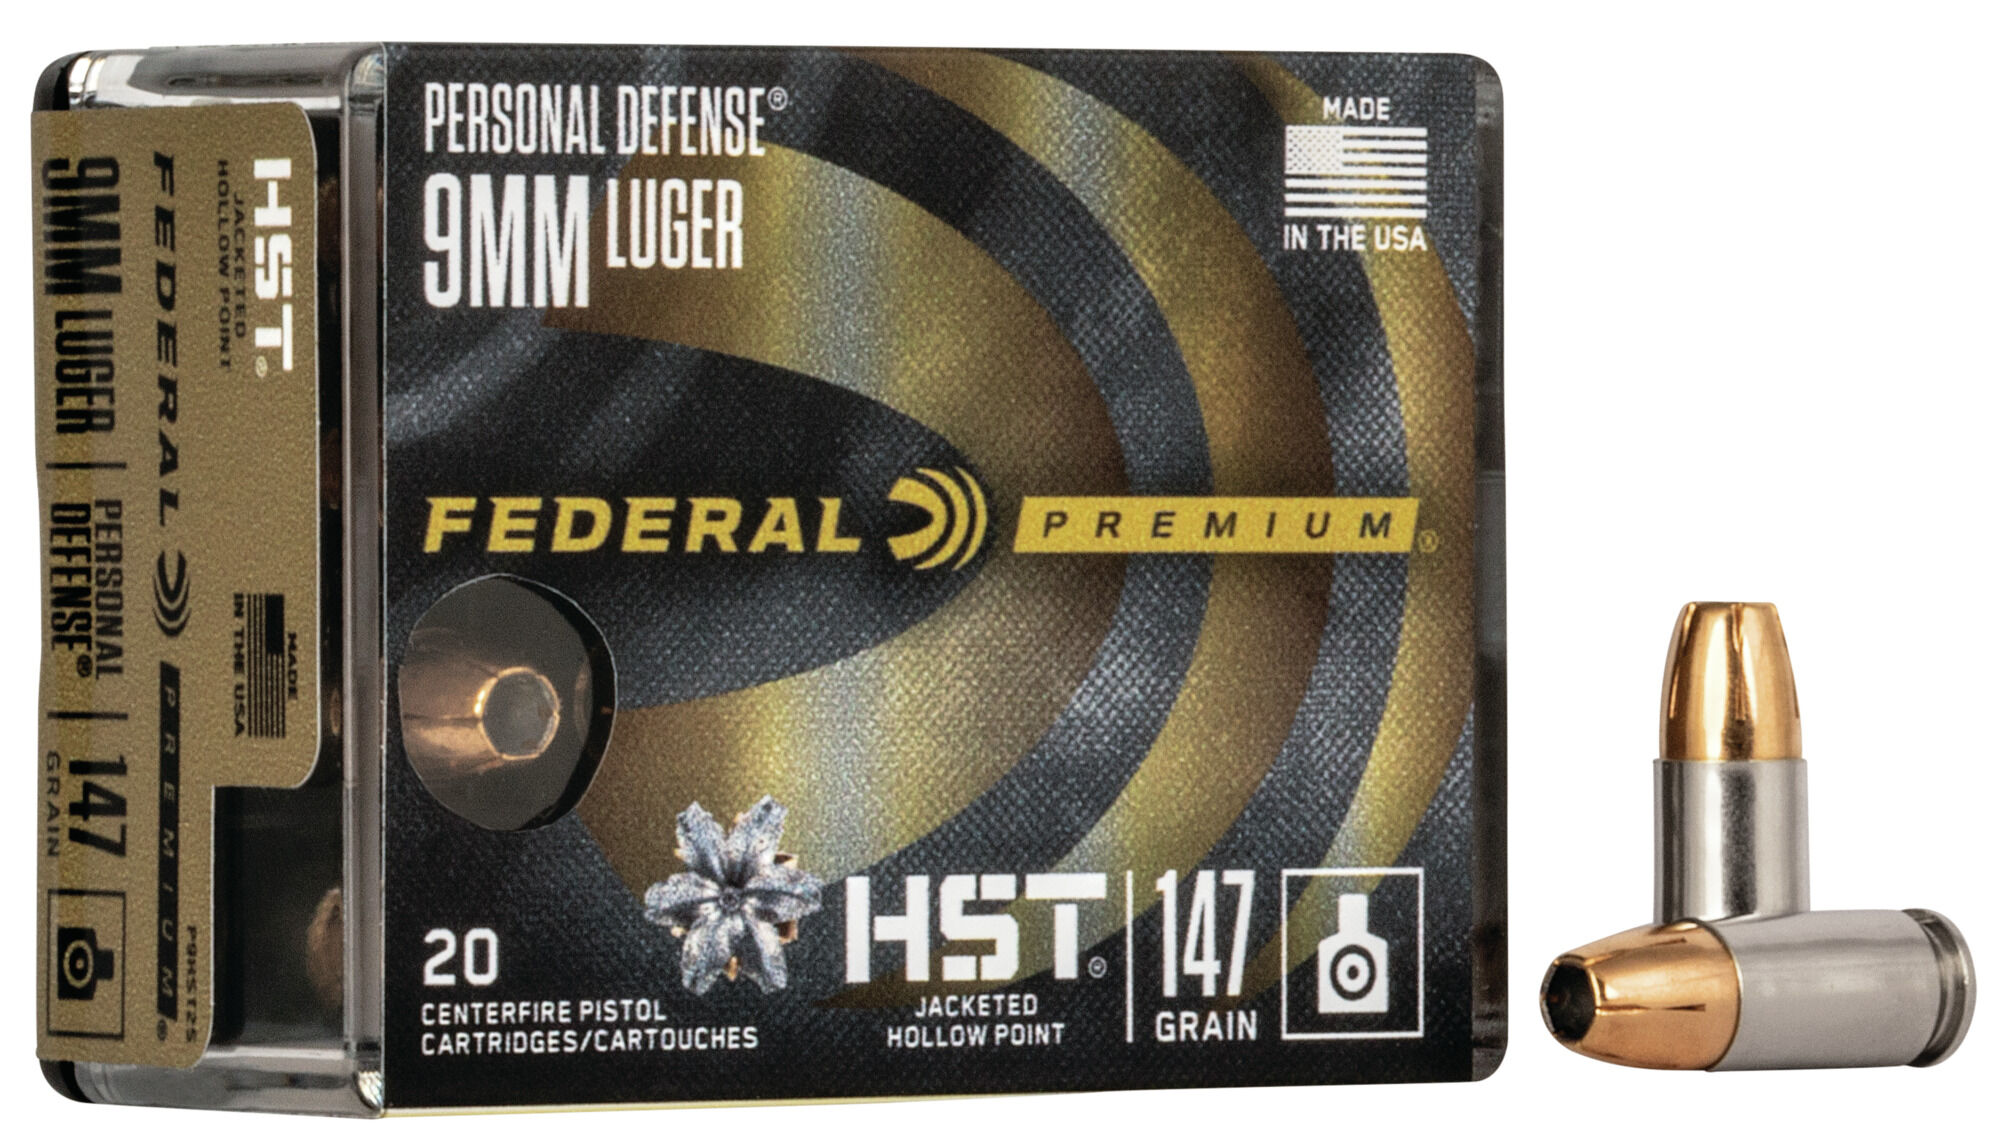 Federal Premium 20mm Luger 20 Grain HST Jacketed Hollow Point ...